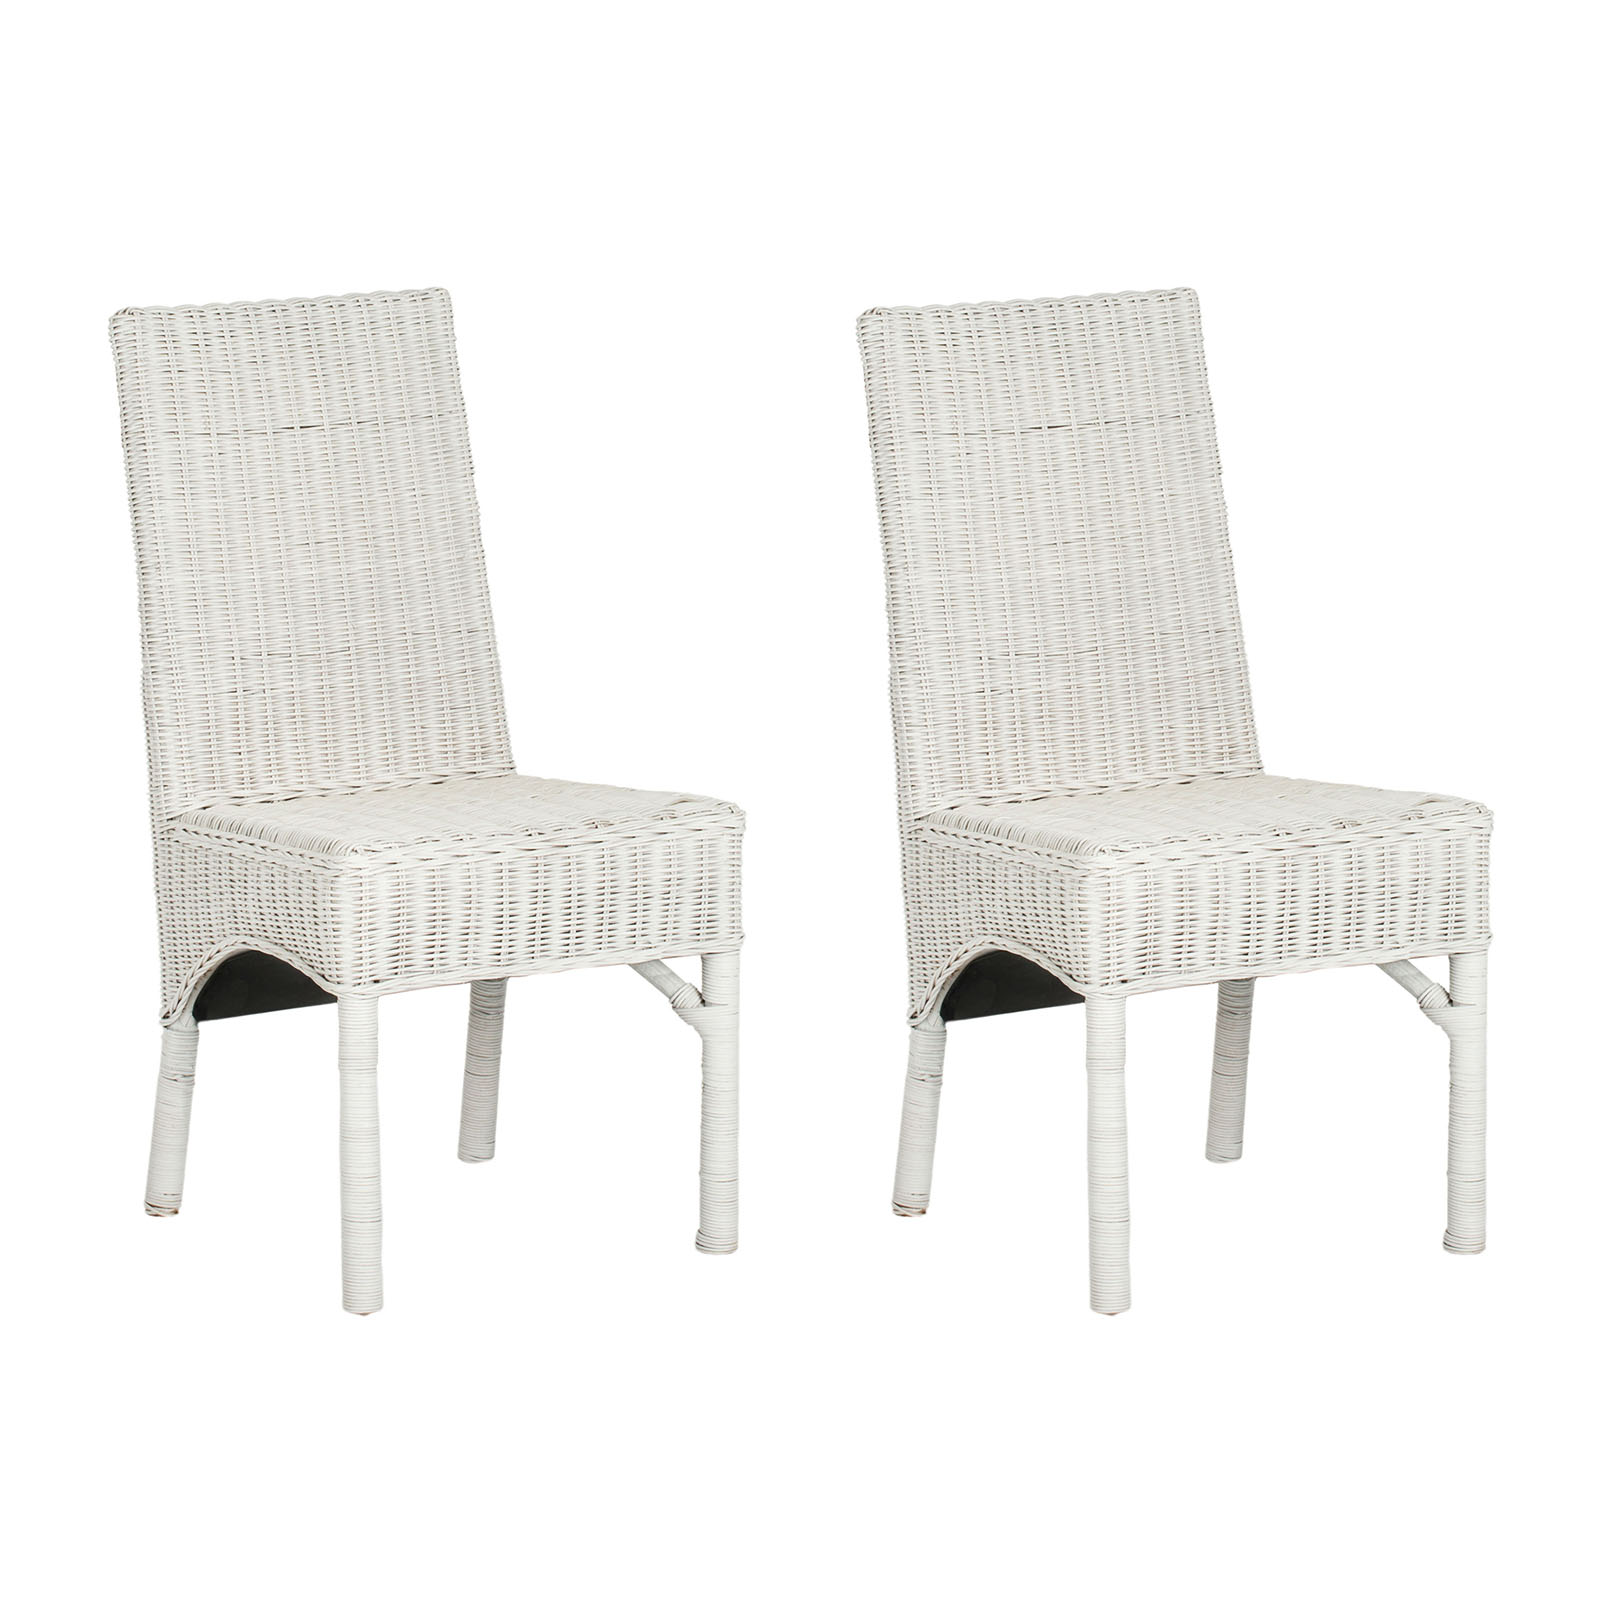 White Rattan Chair Safavieh Sommerset White Wicker Dining Side Chairs Set